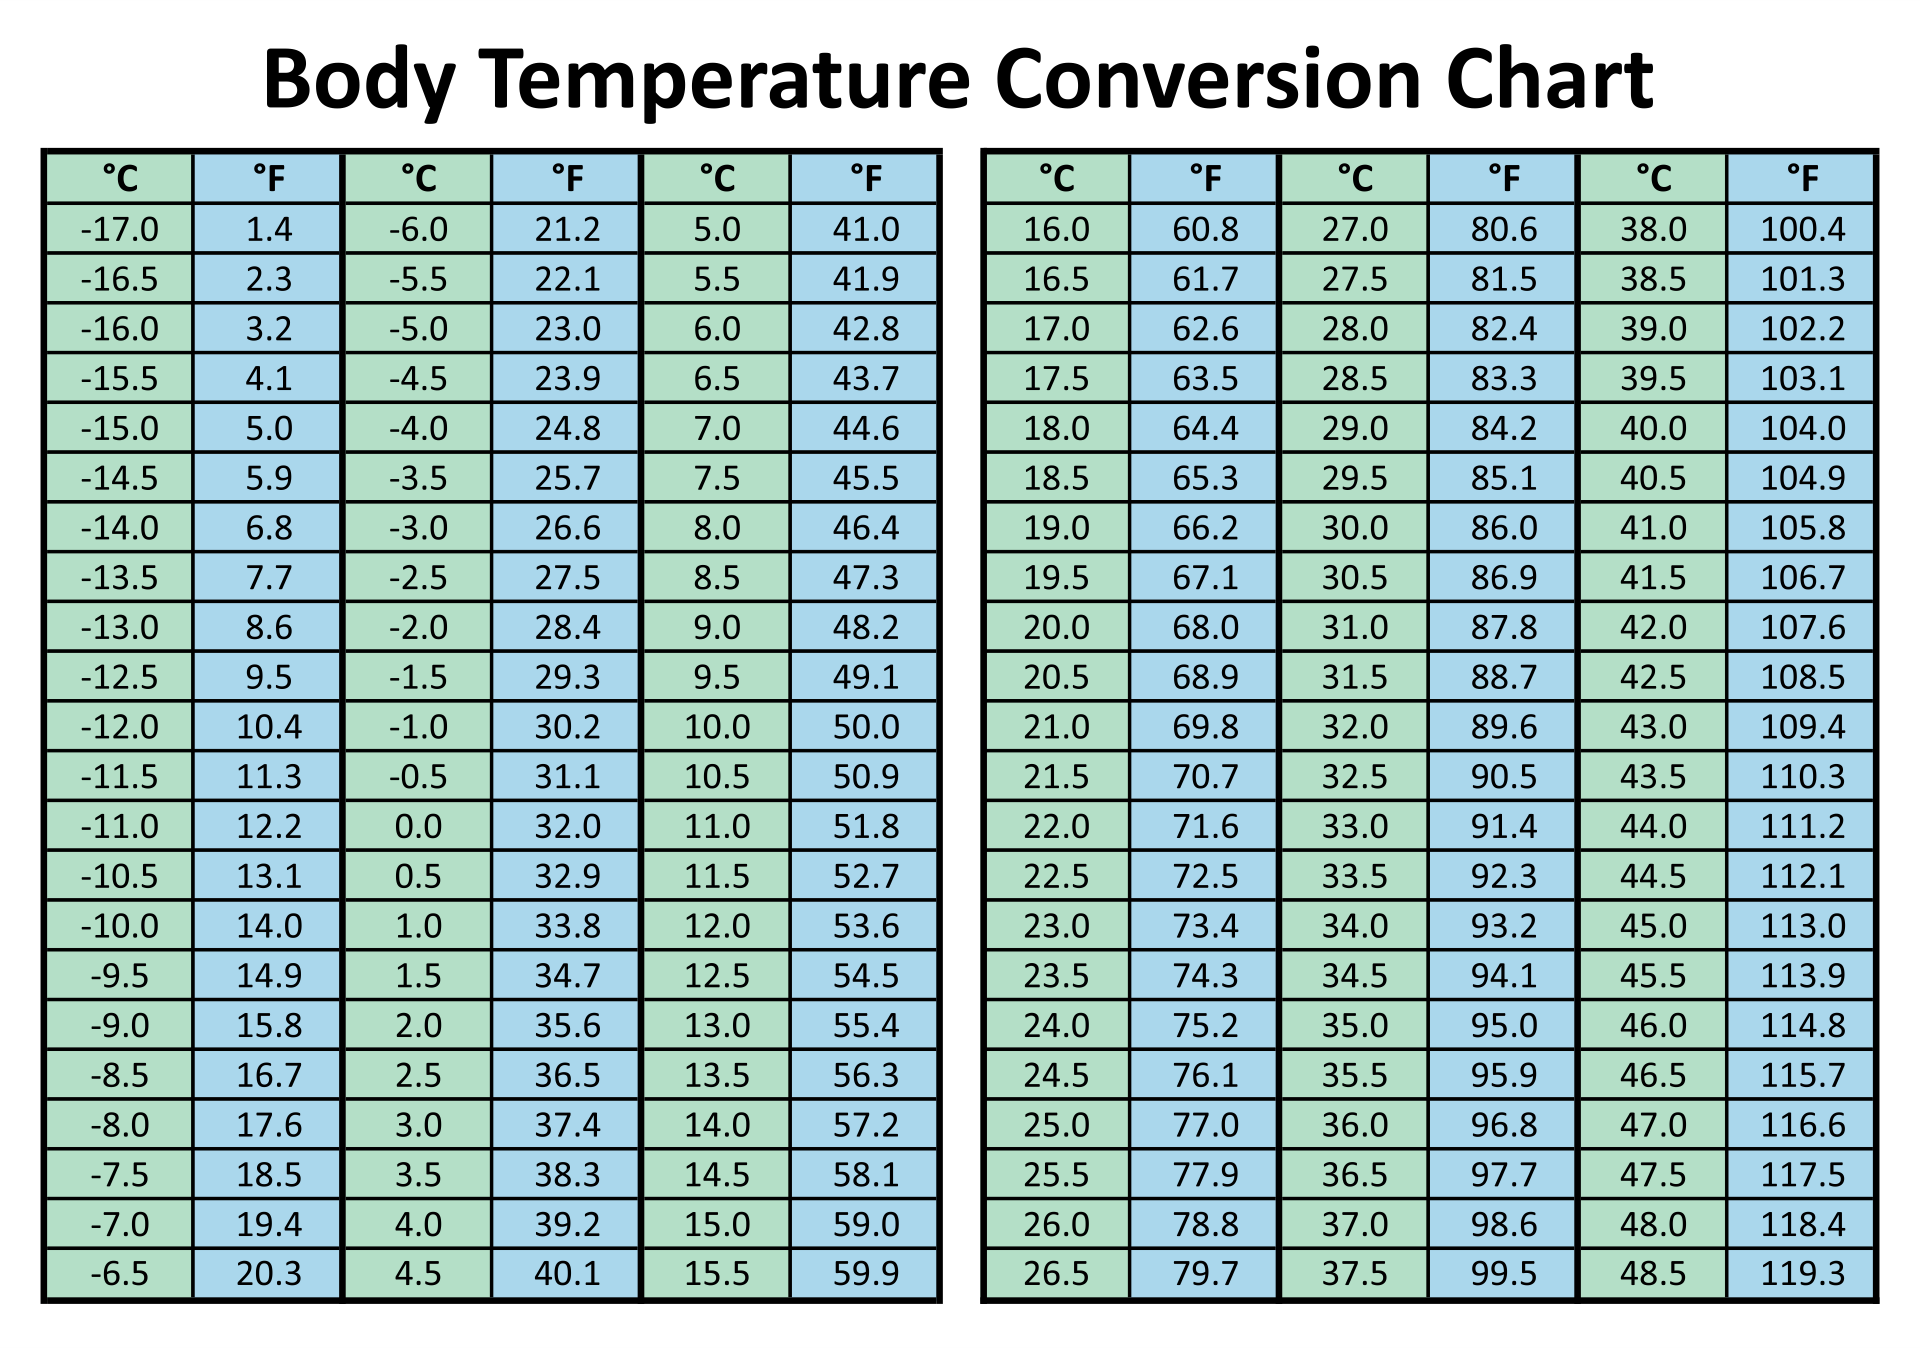 Body Temperature Conversion Chart Printable